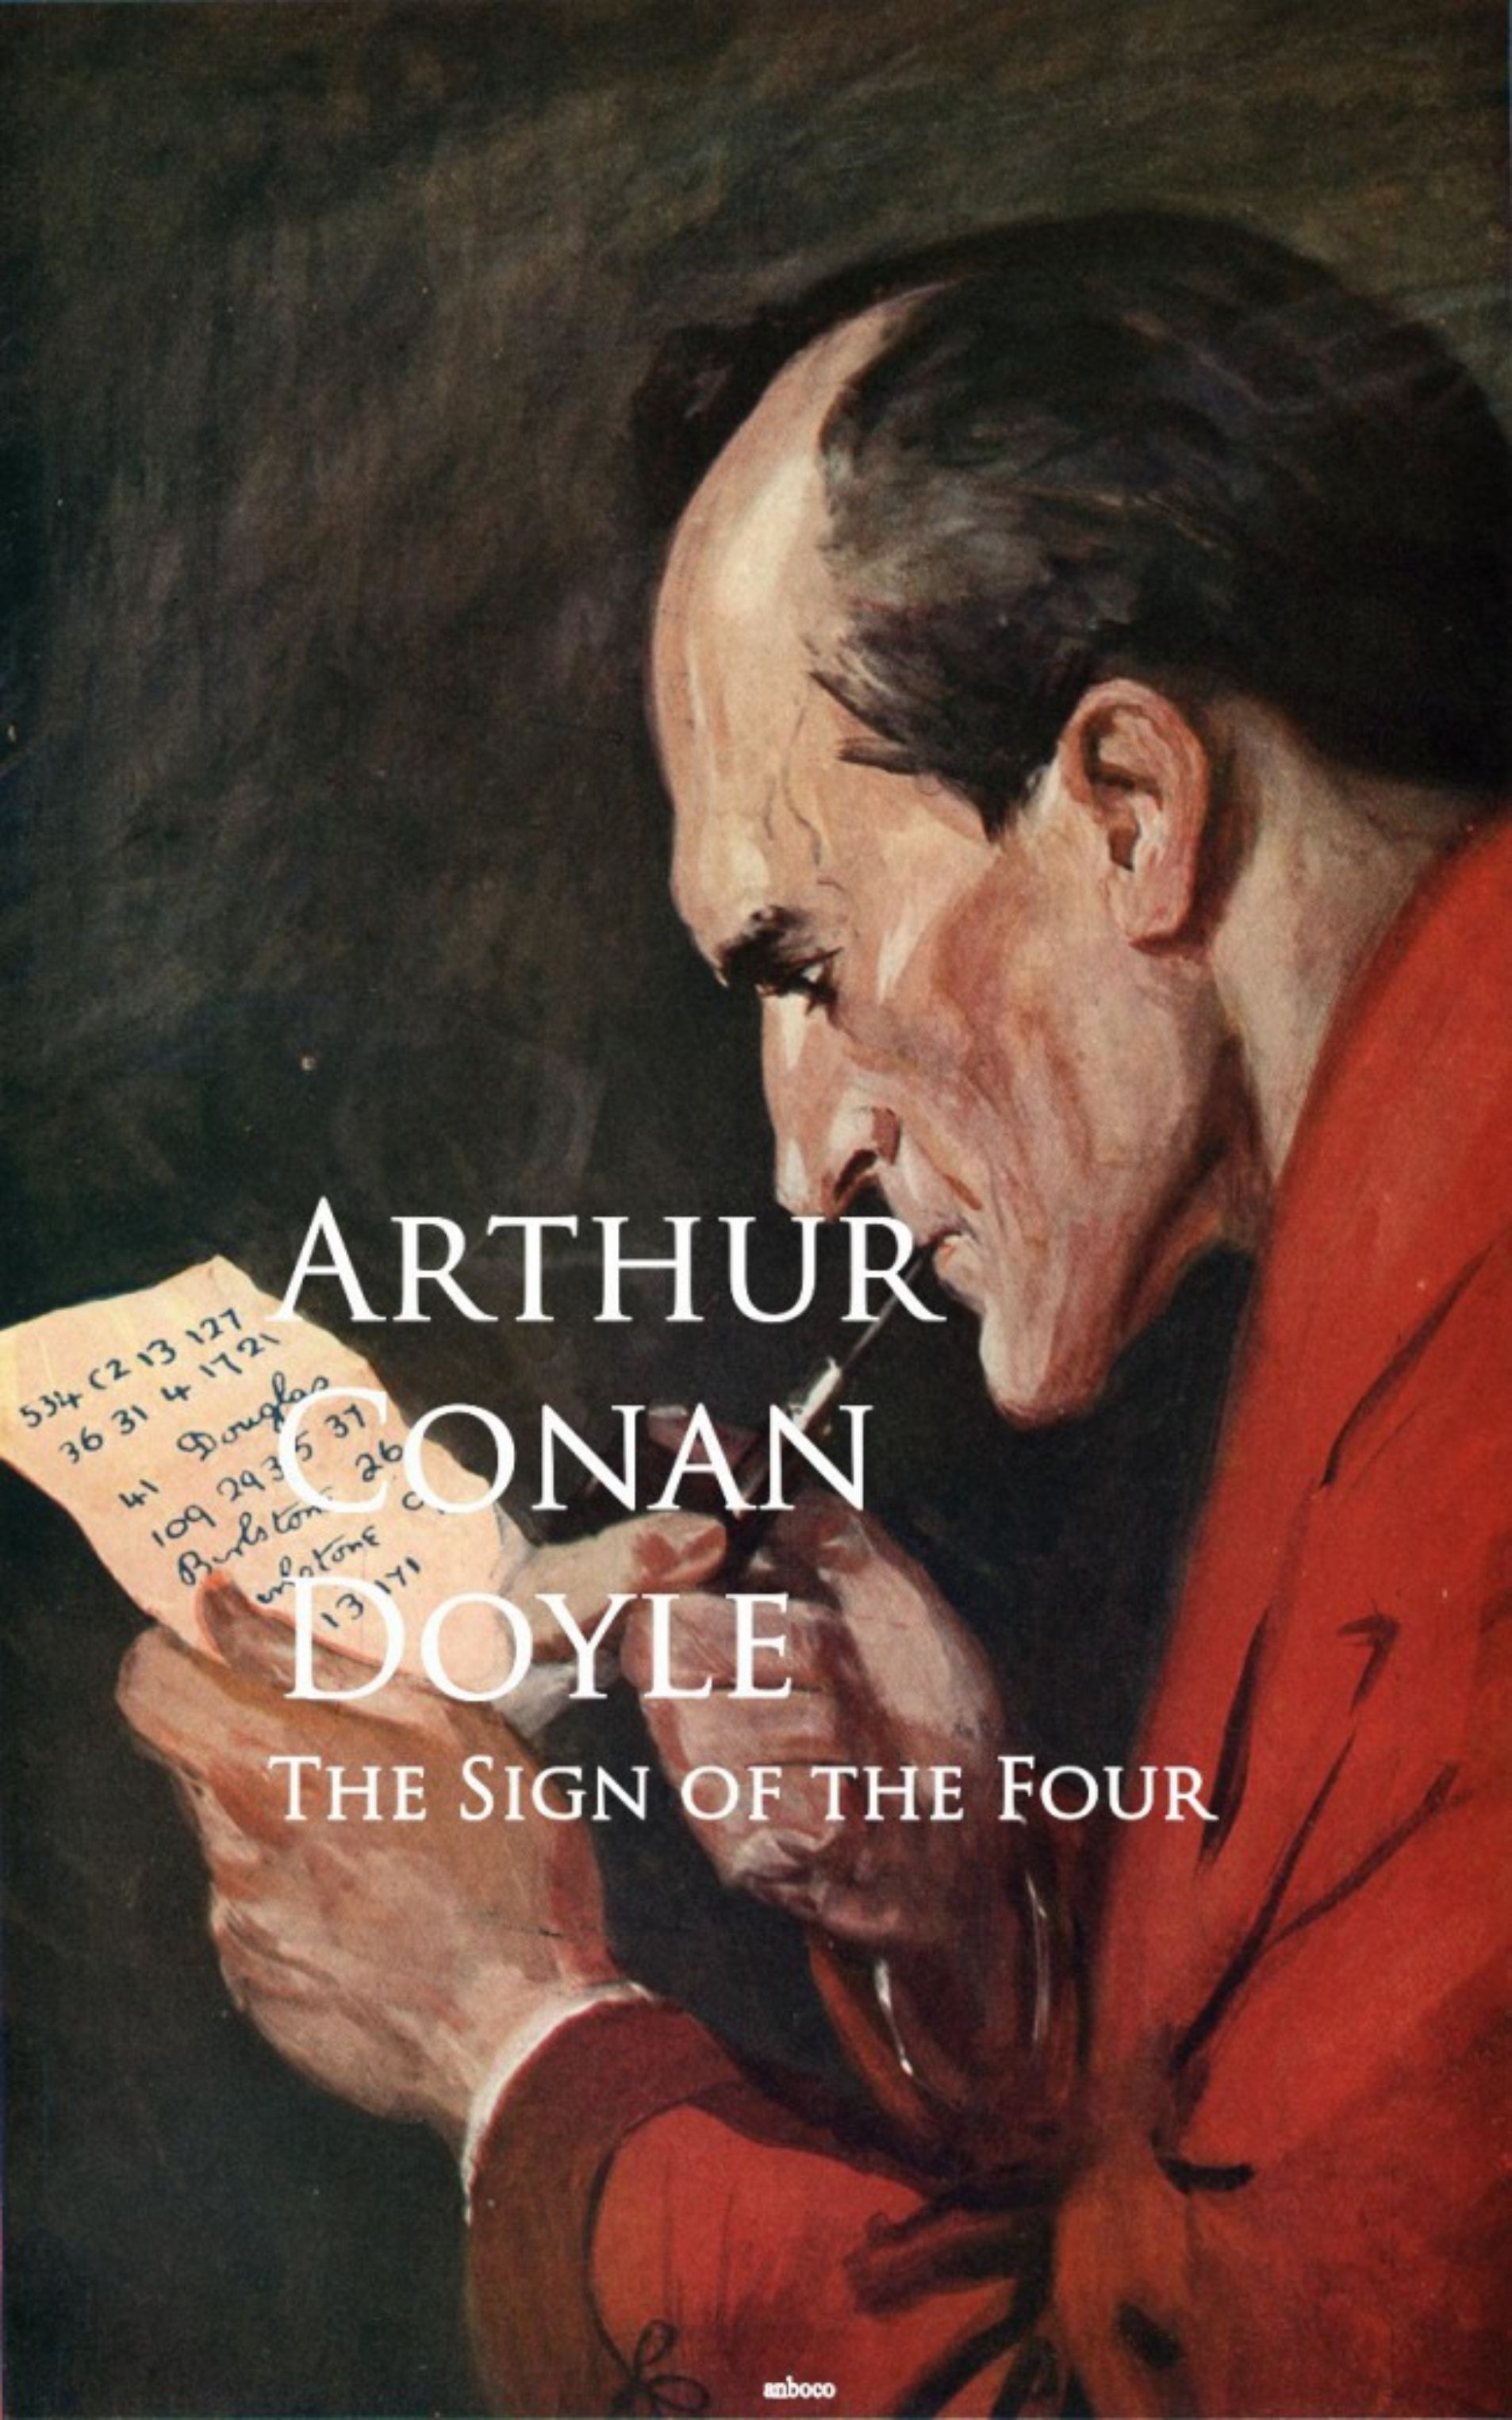 Arthur Conan Doyle The Sign of the Four doyle arthur conan the crime of the congo